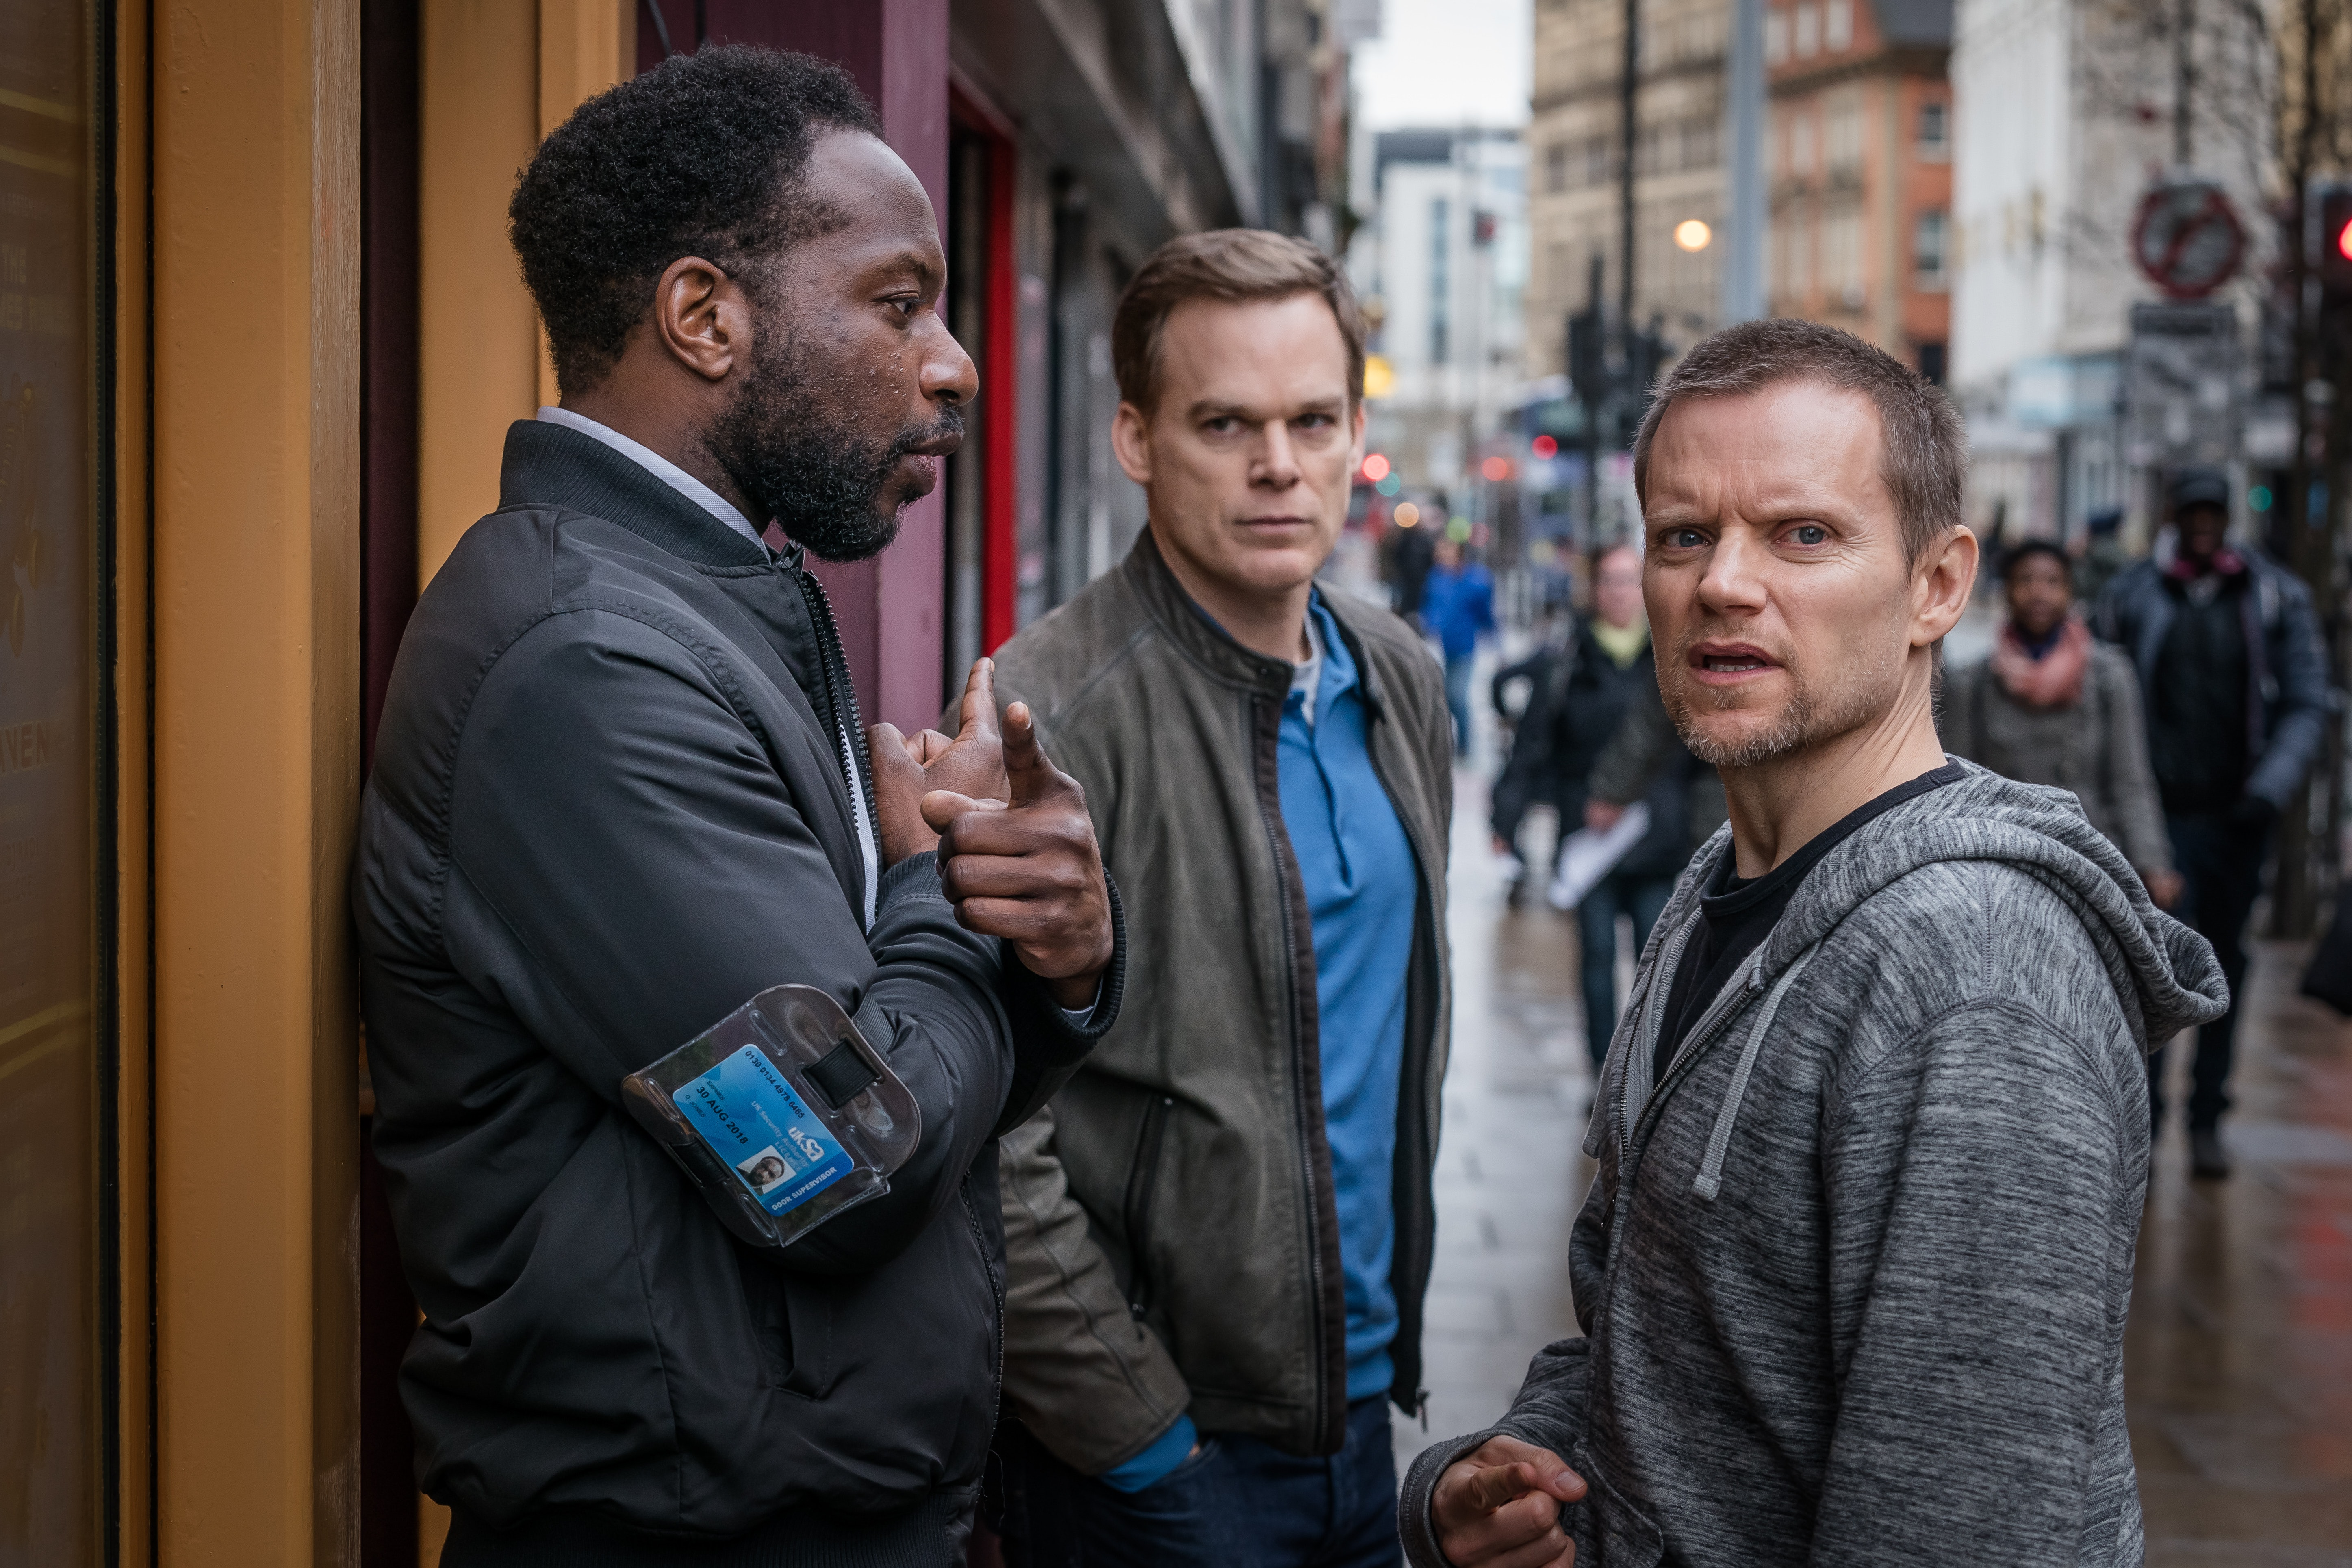 Safe' On Netflix Isn't A True Story, But The Crime Drama